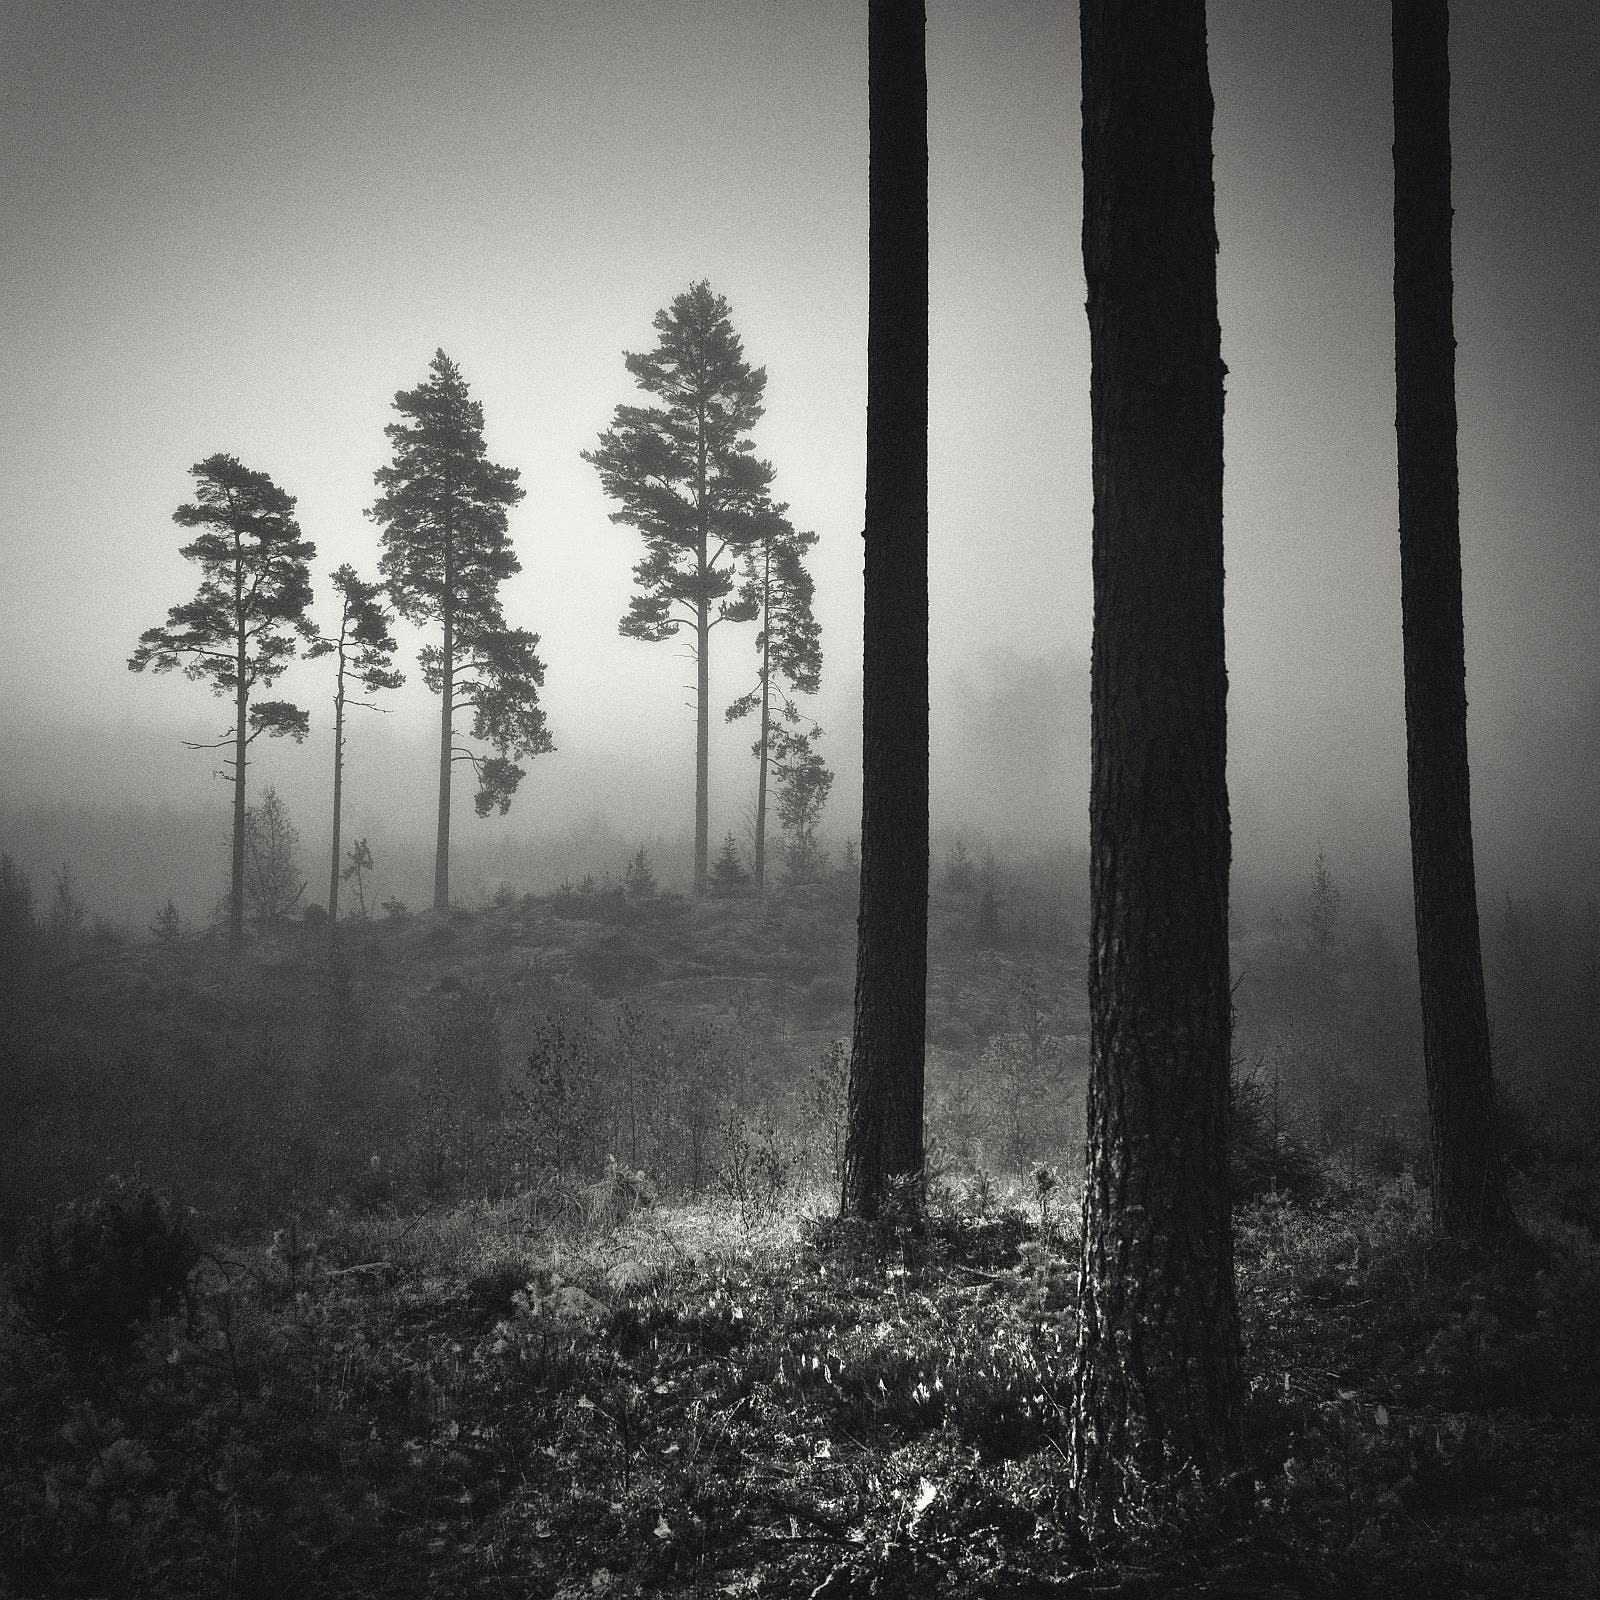 Scene over a deforested foggy hill at dawn